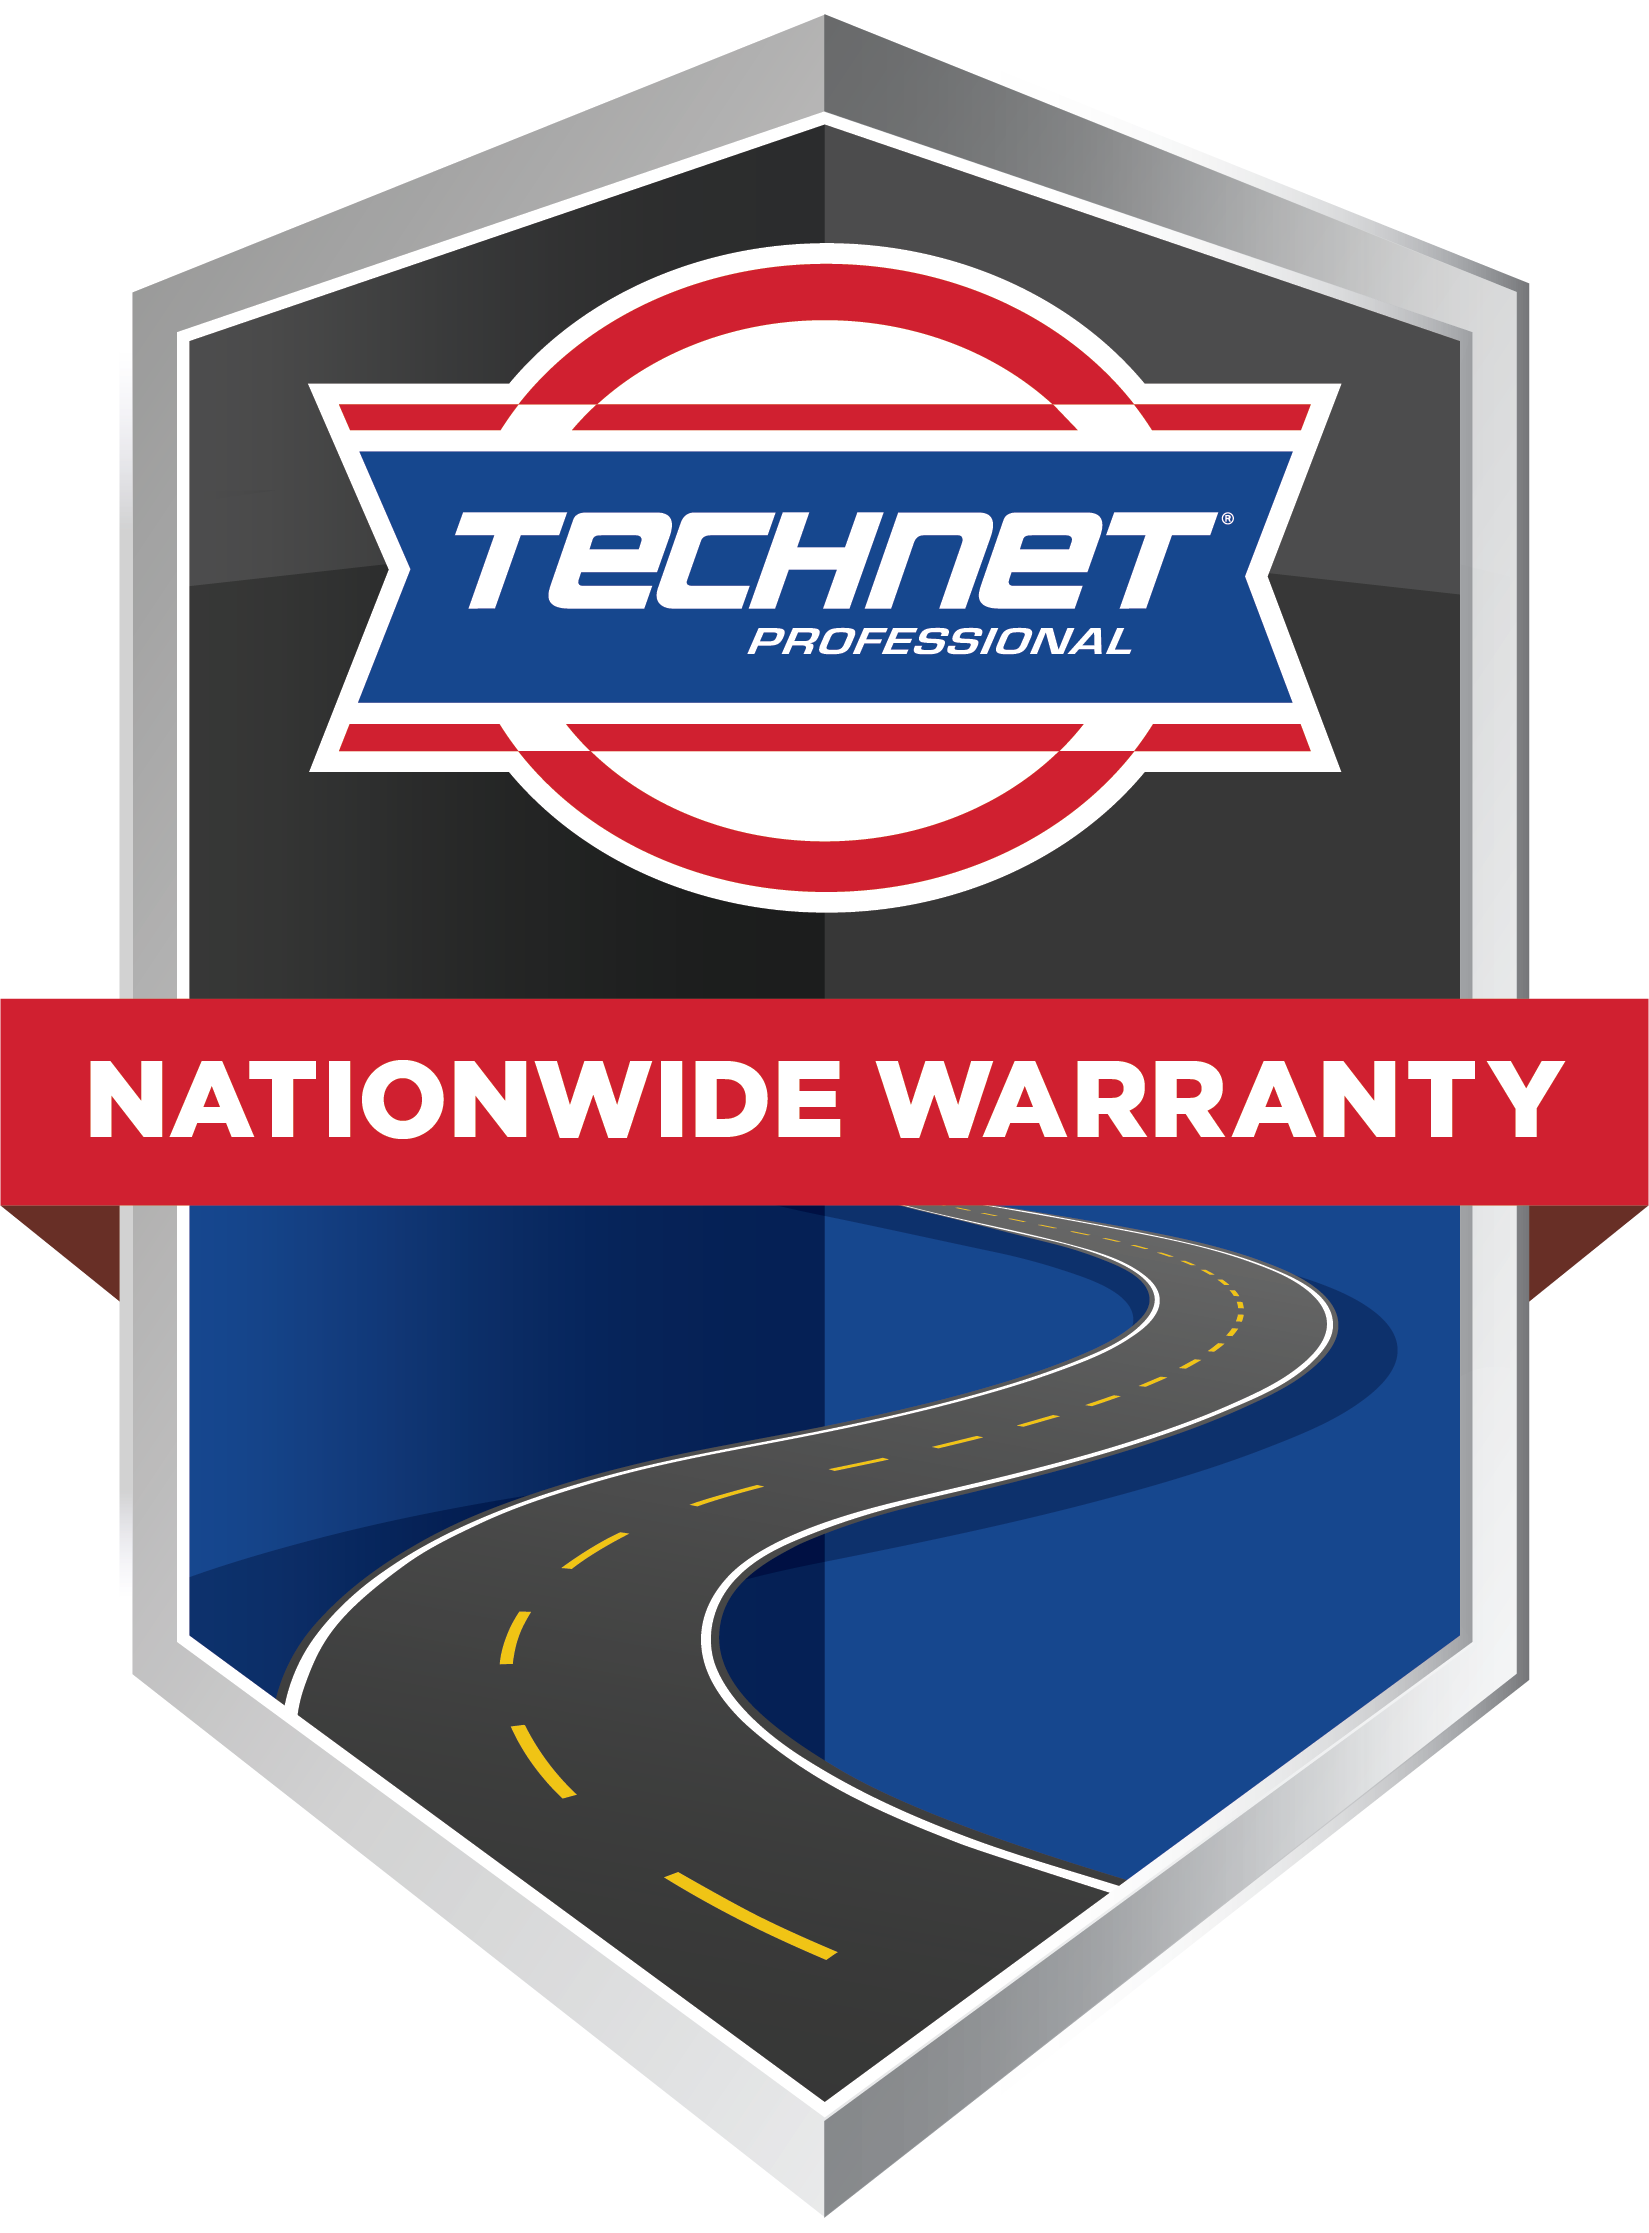 technet professional warrenty